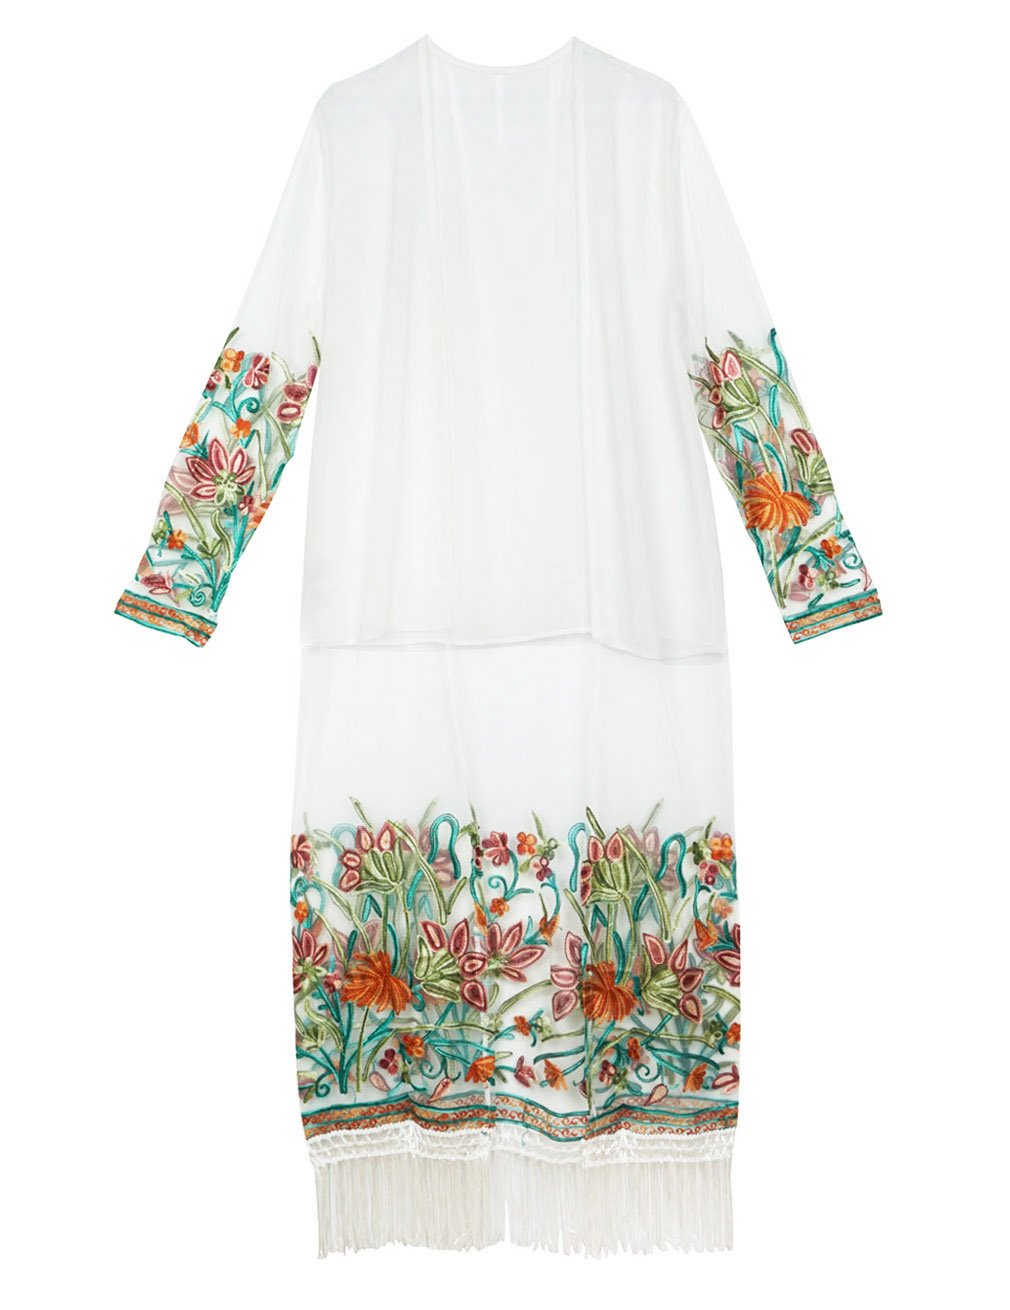 Hamour Women's Floral Chiffon Kimono Cardigan Beach Cover up,One Size Embroider,White